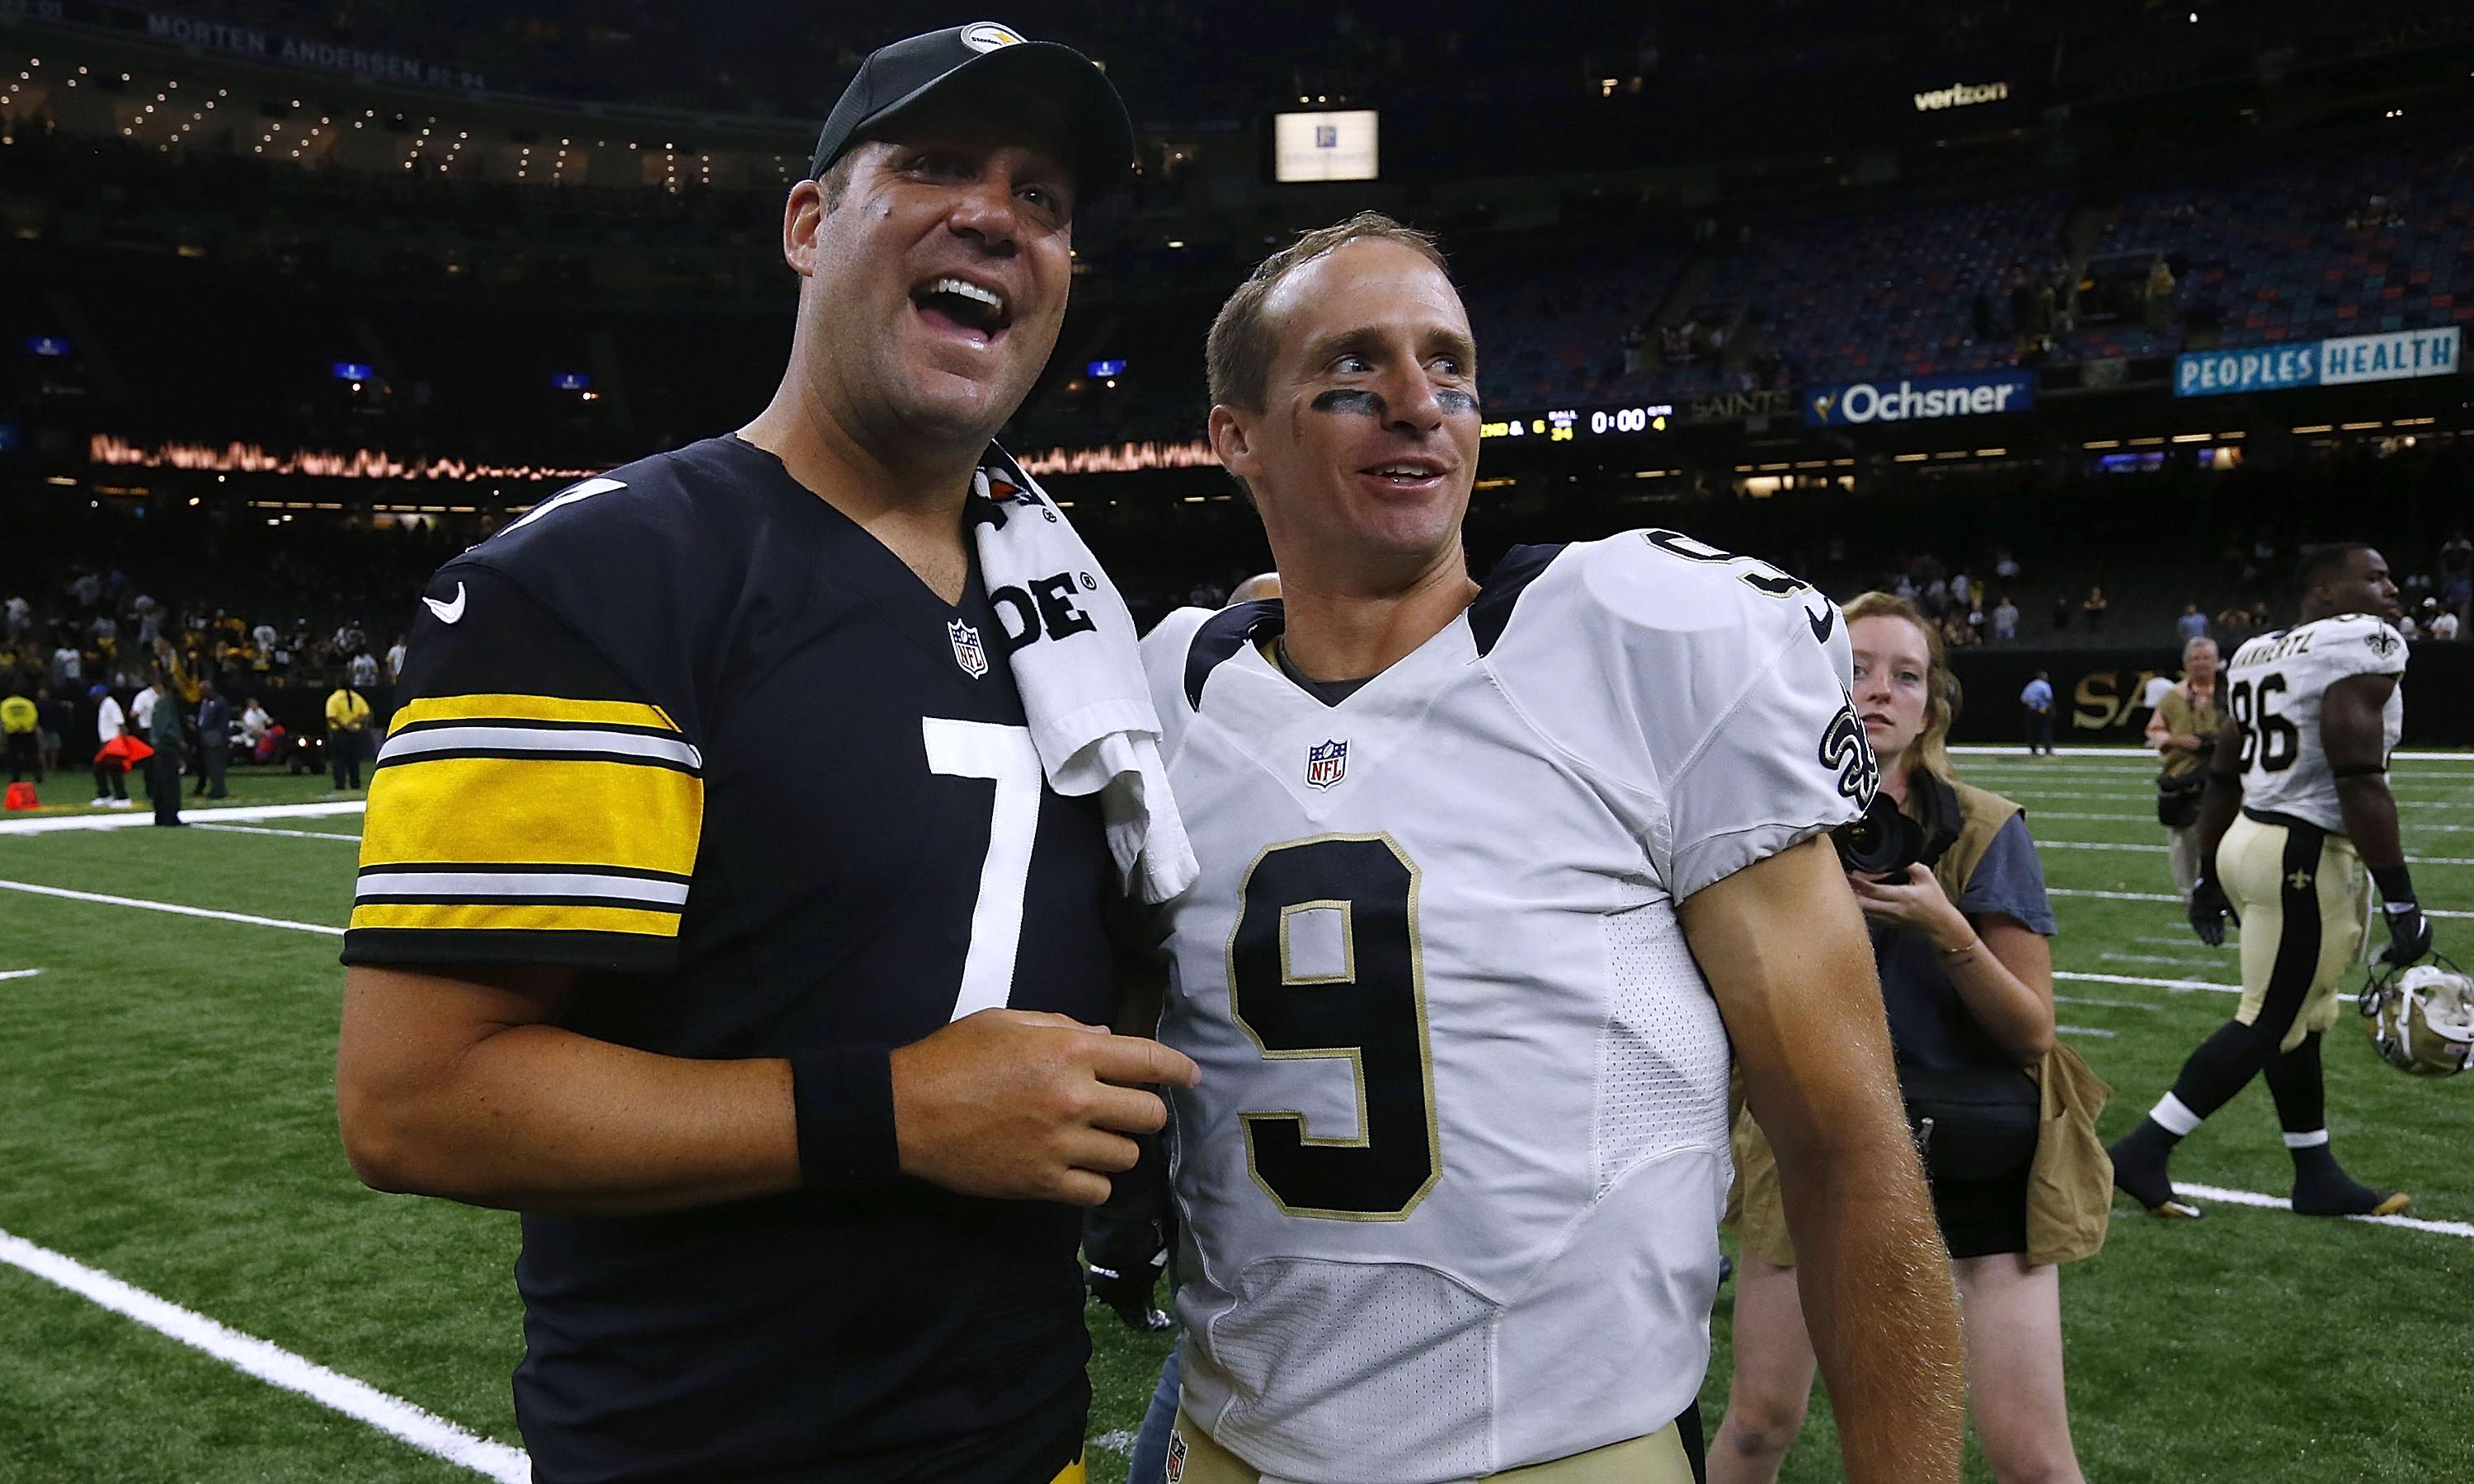 Ben Roethlisberger's NFL season over with Drew Brees set to miss six weeks